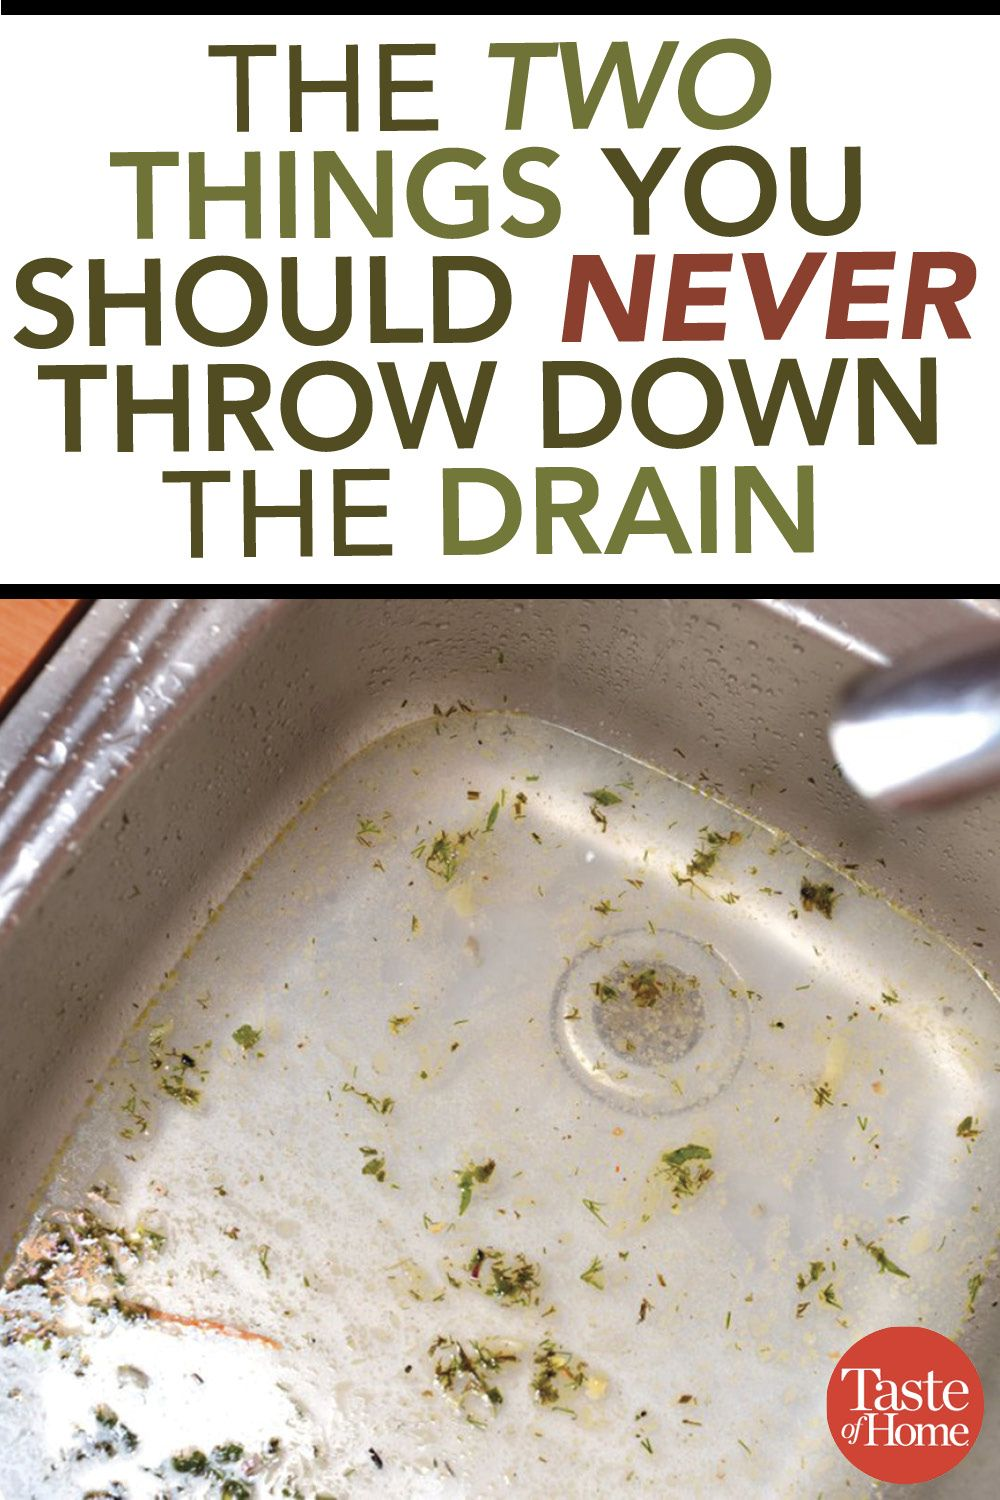 the two things you shouldn't throw down the drain | kitchen